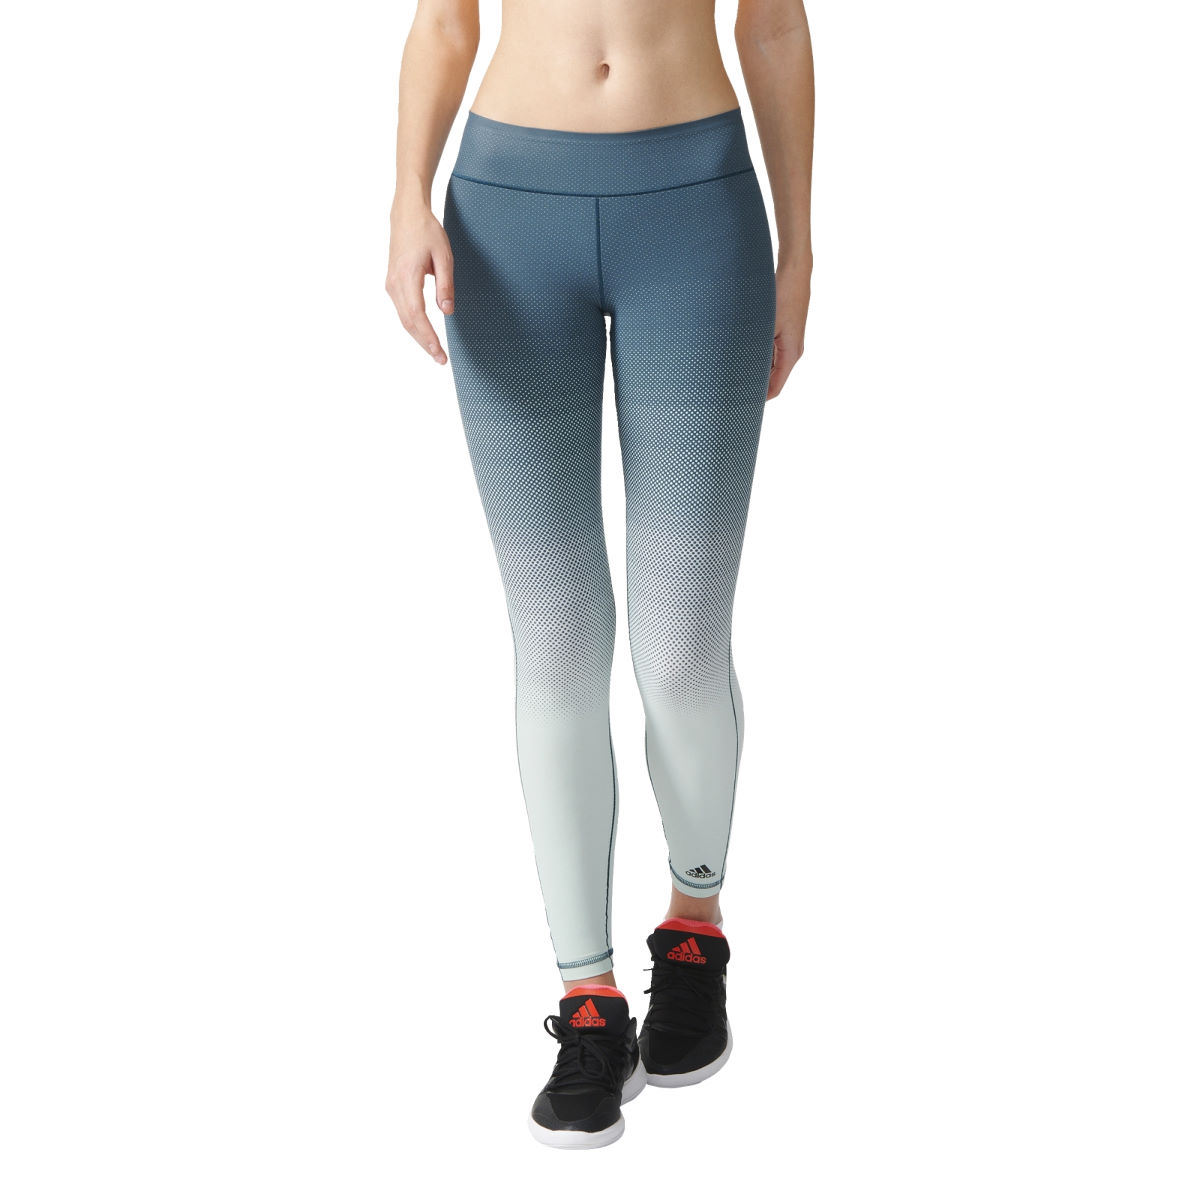 Adidas Womens Miracle Sculpt Tight (AW16)   Running Tights